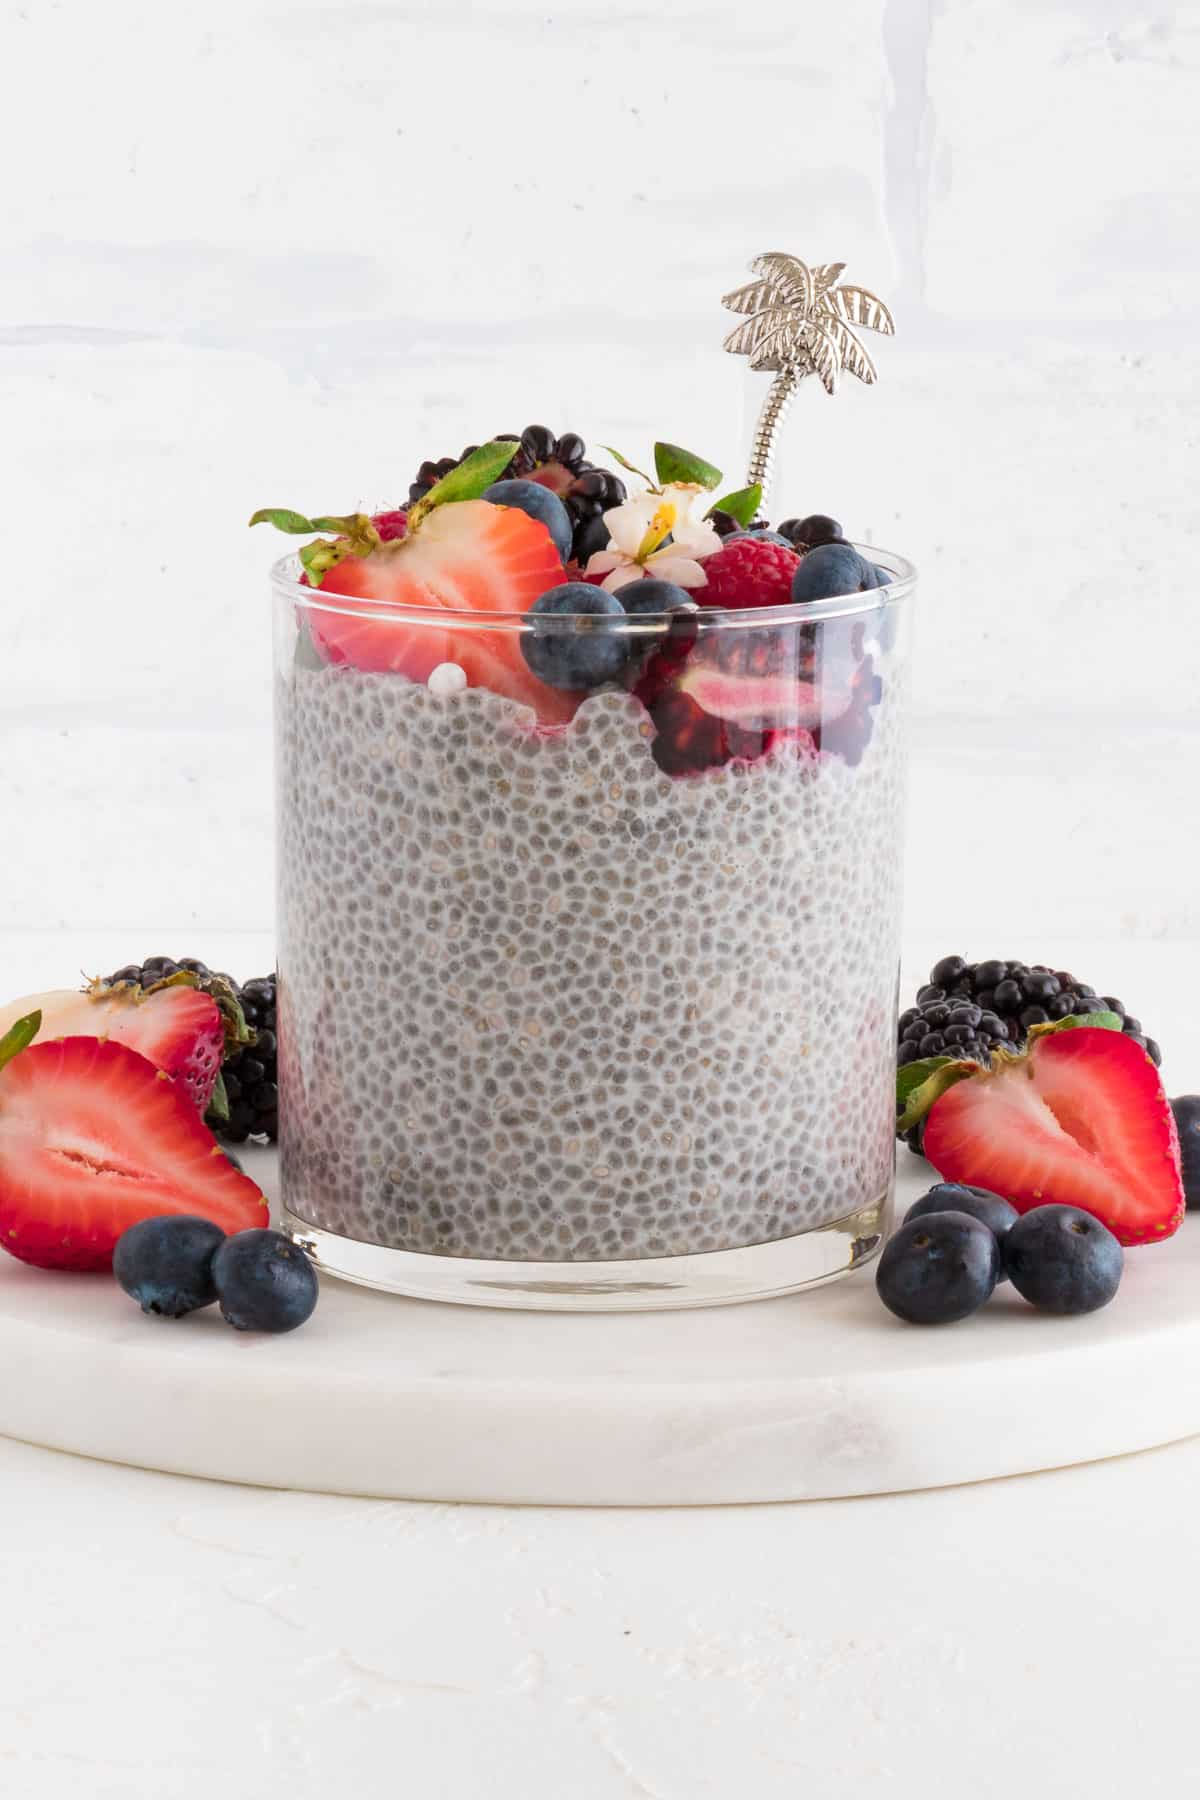 a glass containing chia pudding with strawberries, blueberries, blackberries, and raspberries